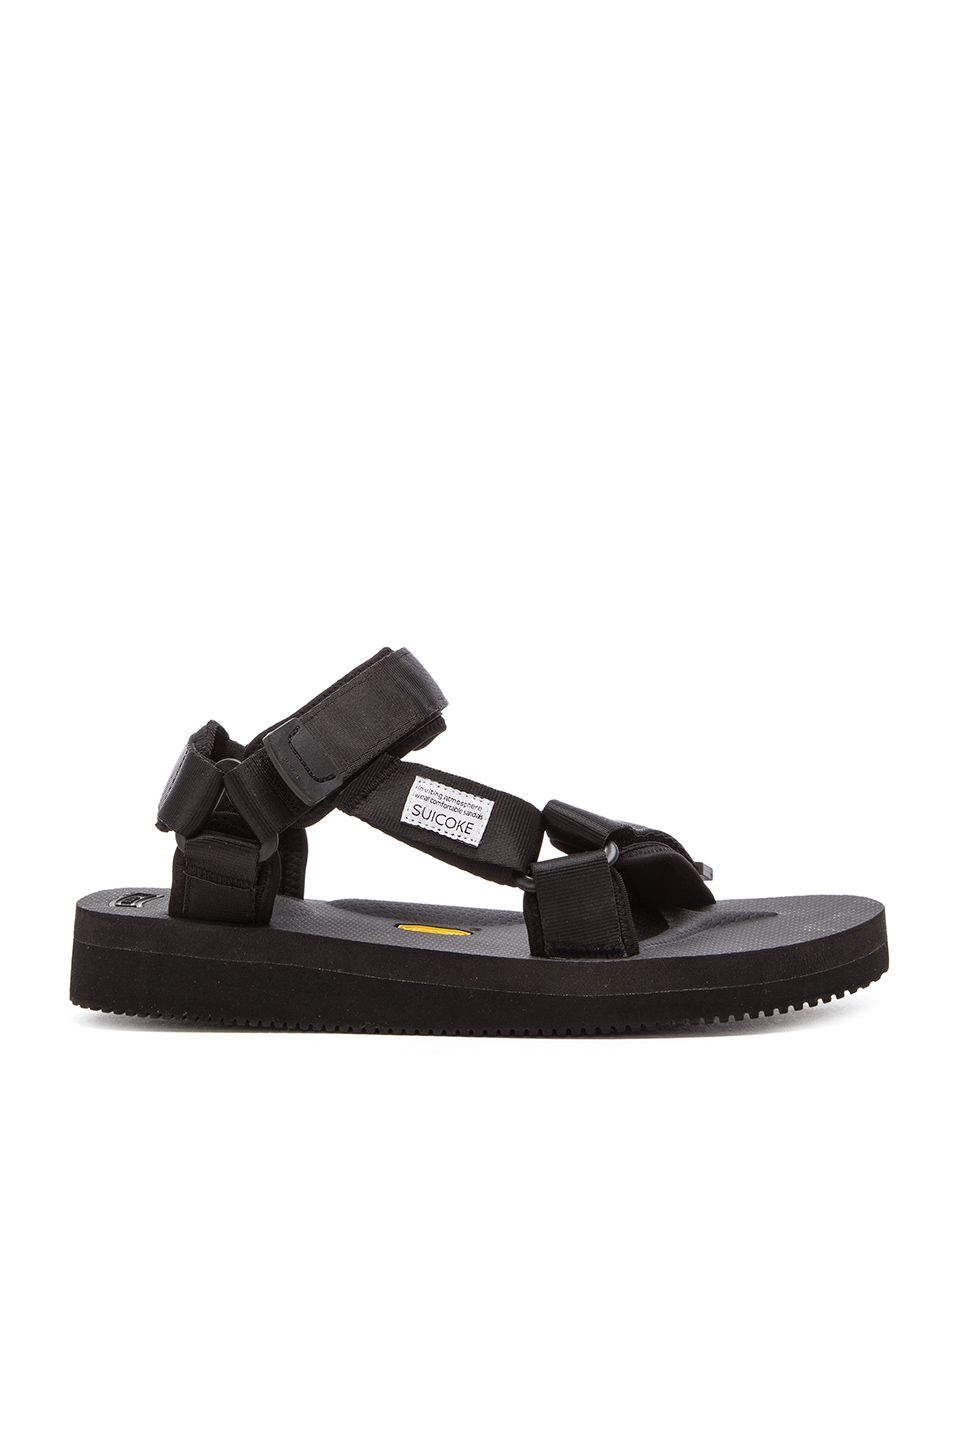 c48bbee0bdc8 SUICOKE SUICOKE DEPA-V2 SANDAL IN BLACK. .  suicoke  shoes  sandals ...